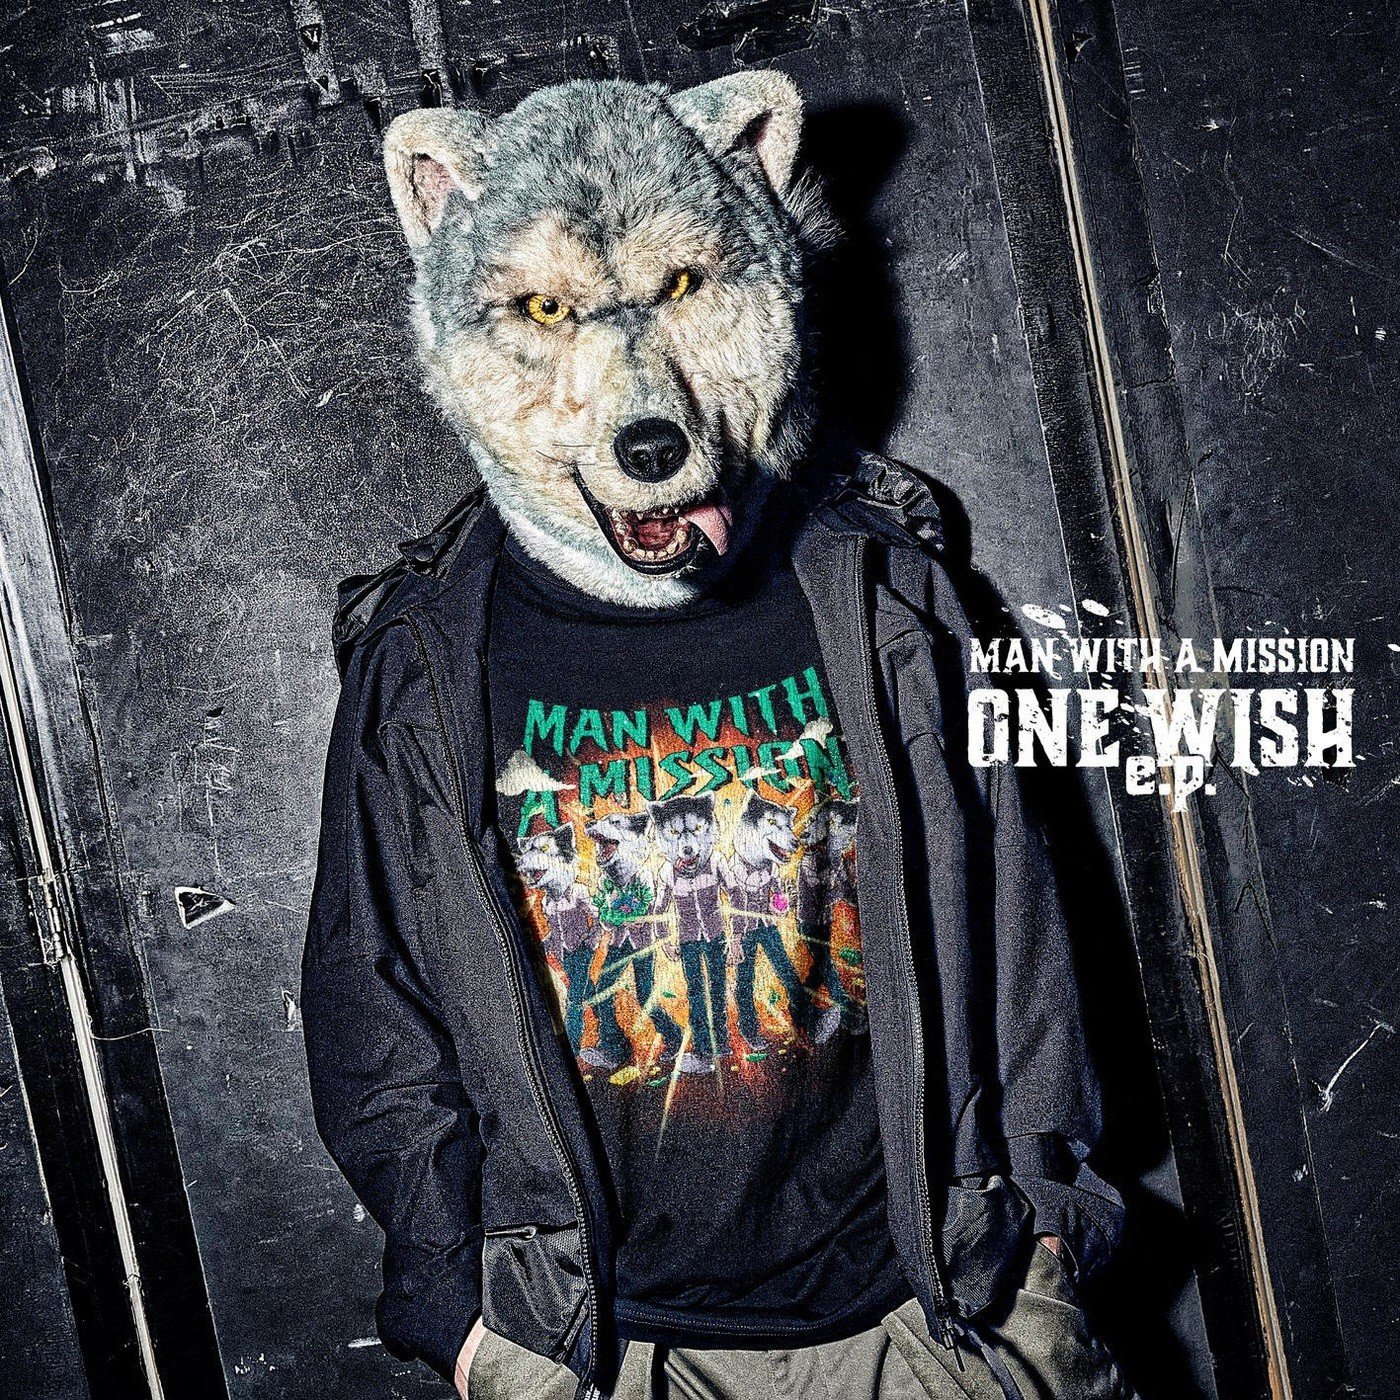 MAN WITH A MISSION – ONE WISH e.p. [24bit Lossless + MP3 320 / WEB] [2021.02.10]